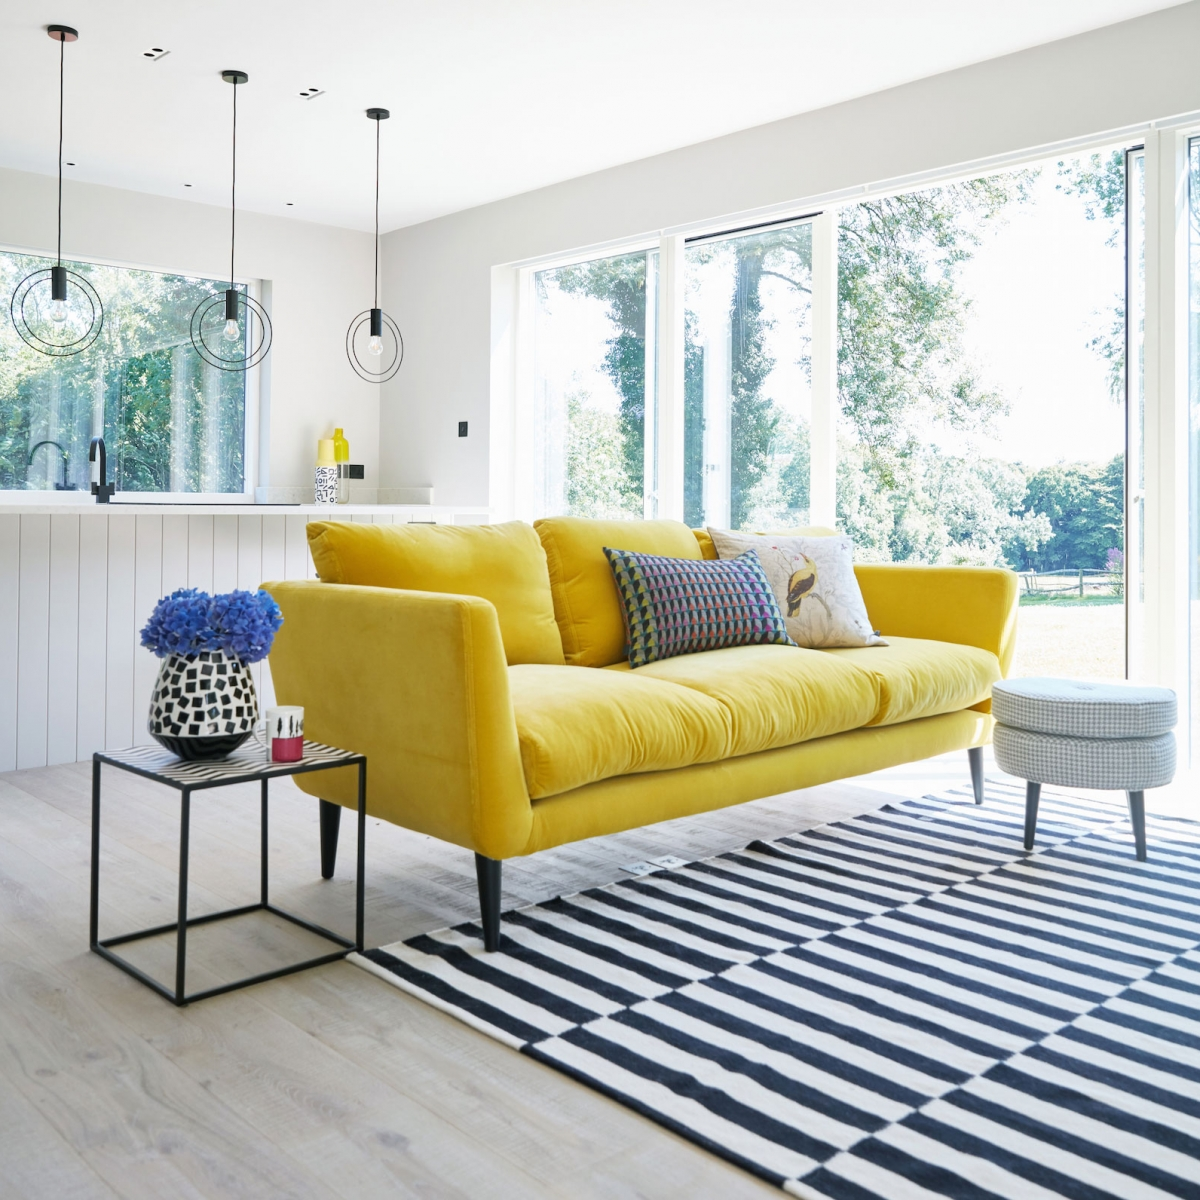 Canaray yellow velvet sofa adds a pop of colour to an all grey living room in the new annex build at the home of interior deisgner Sophie Robinson